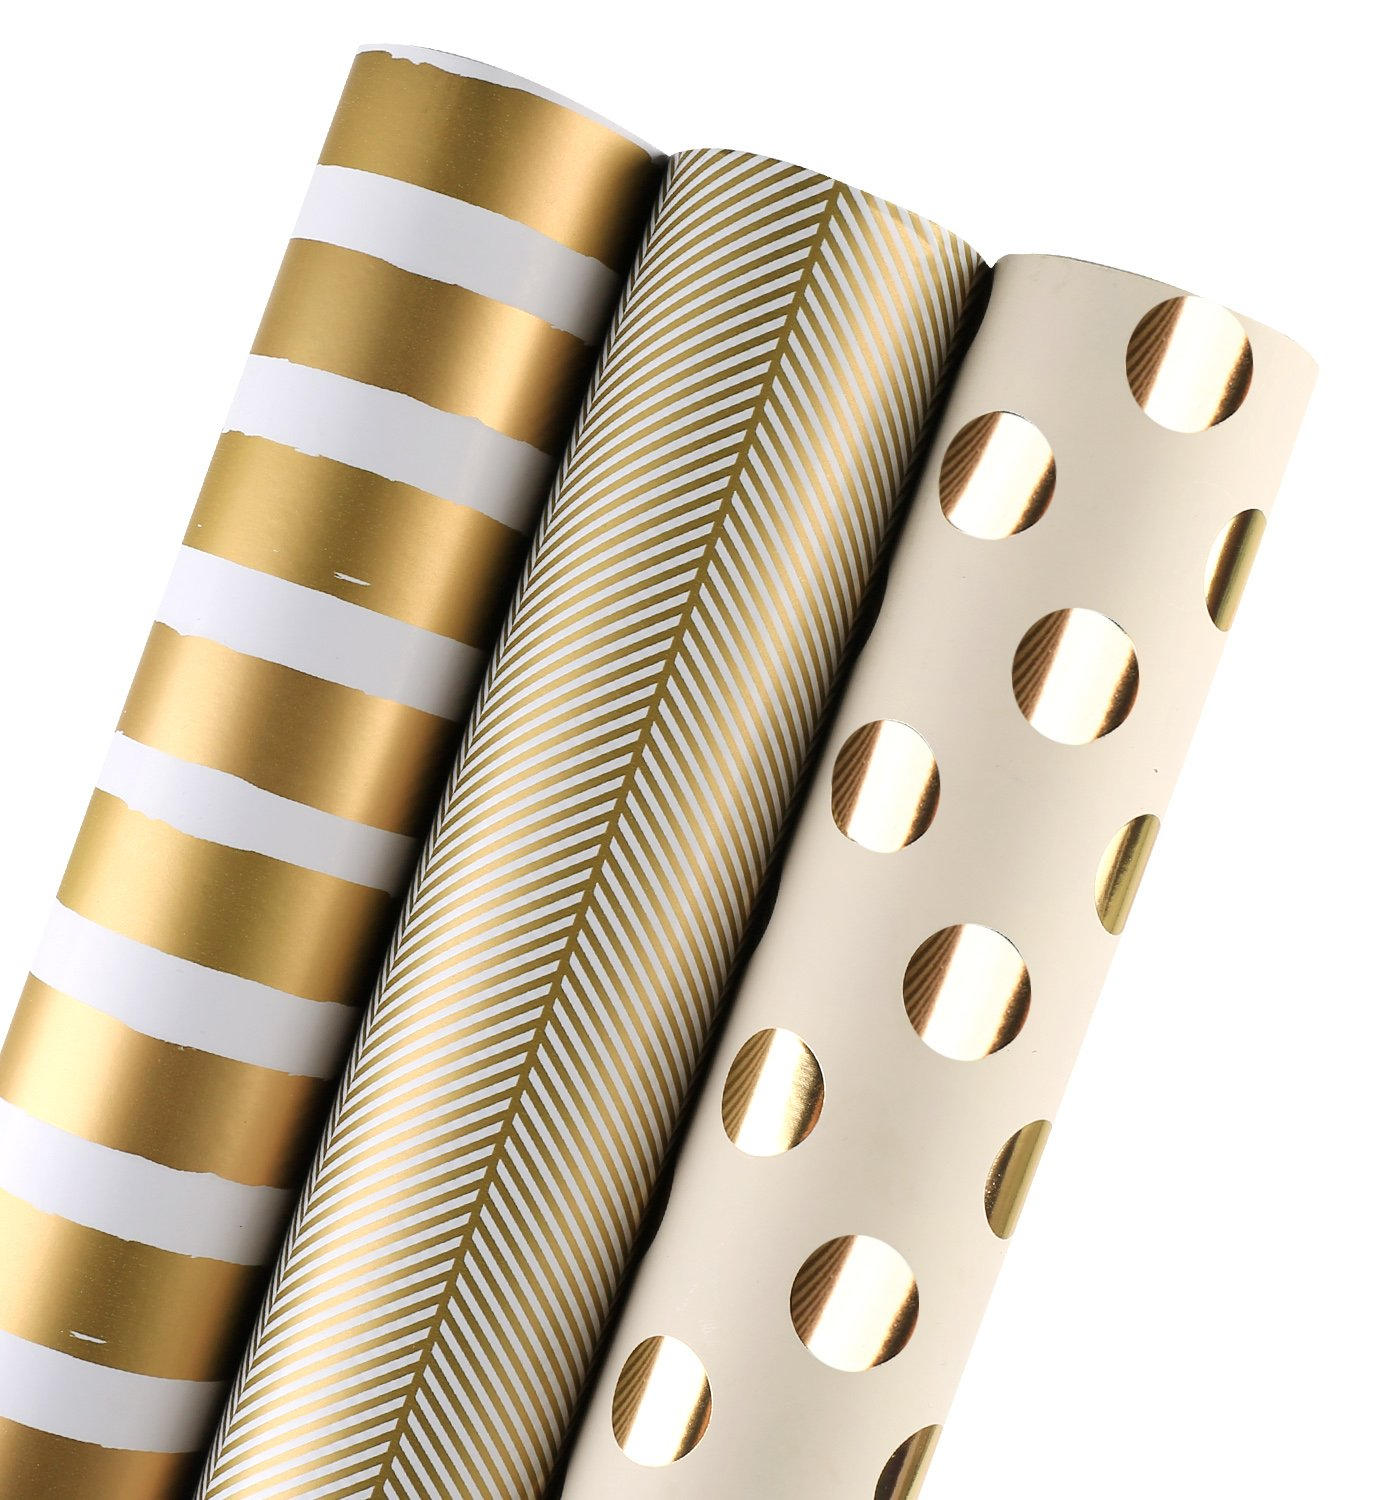 WRAPAHOLIC Gift Wrapping Paper Roll - Gold Print for Birthday, Holiday, Wedding, Baby Shower Gift Wrap - 3 Rolls - 30 inch X 120 inch Per Roll